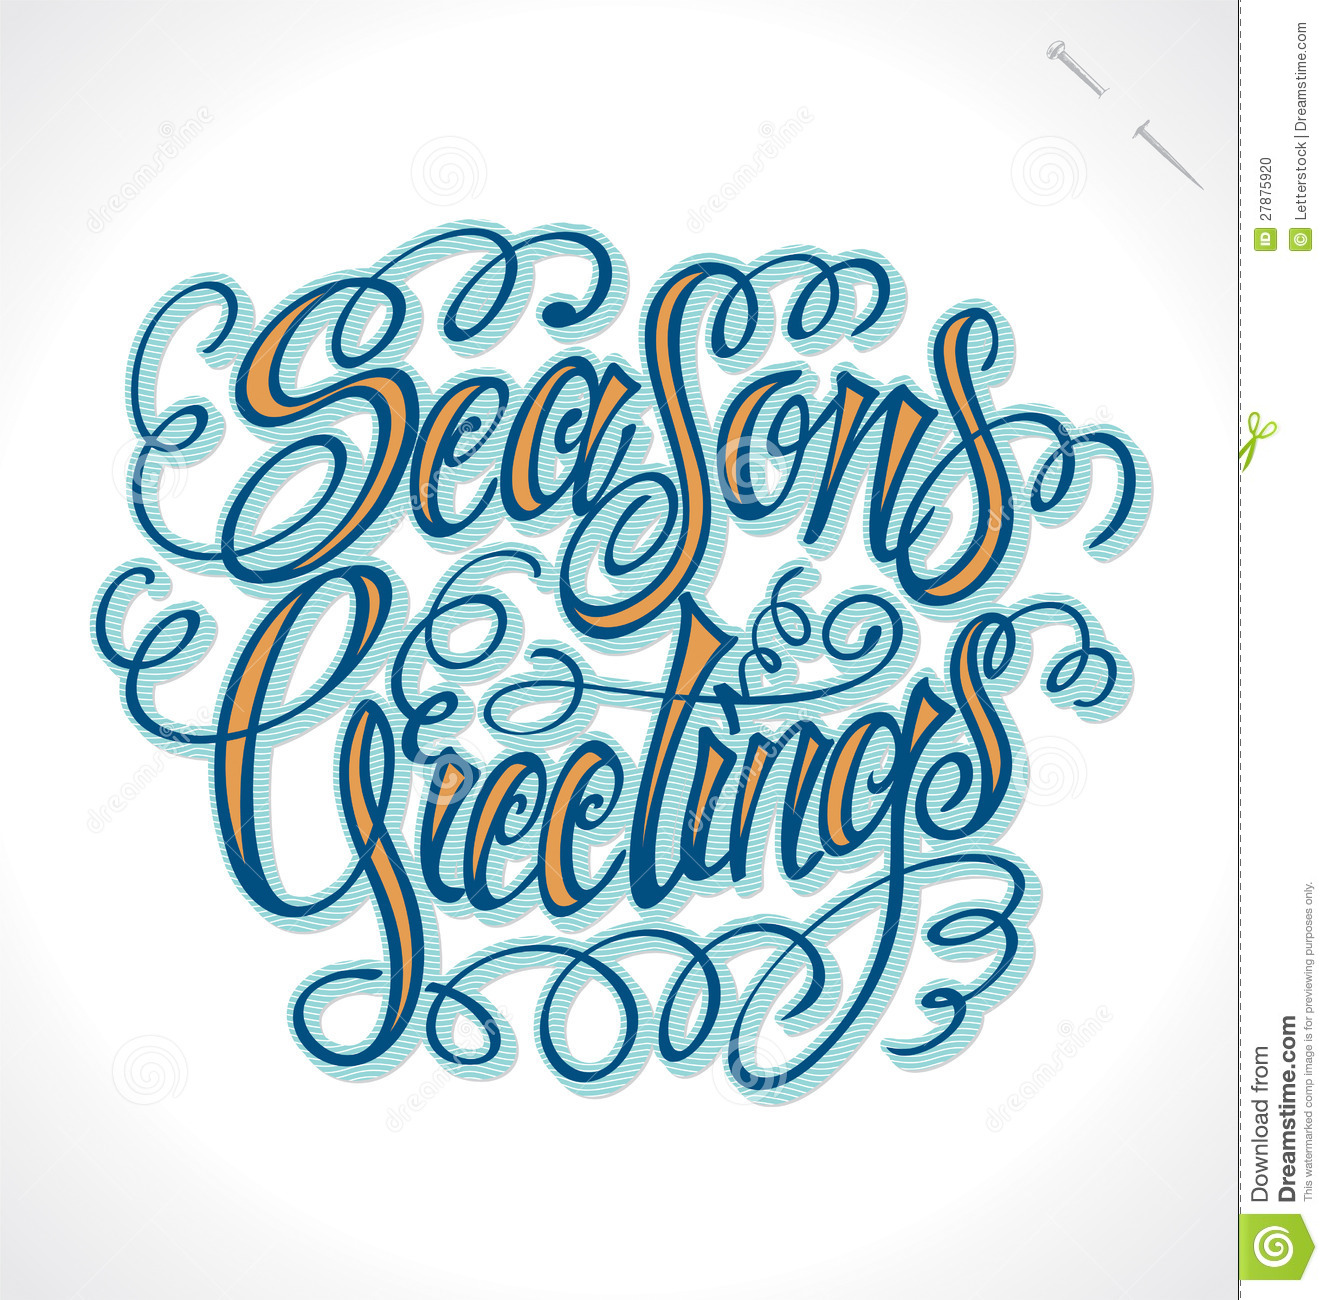 Seasons greetings hand lettering vector stock vector seasons greetings hand lettering vector m4hsunfo